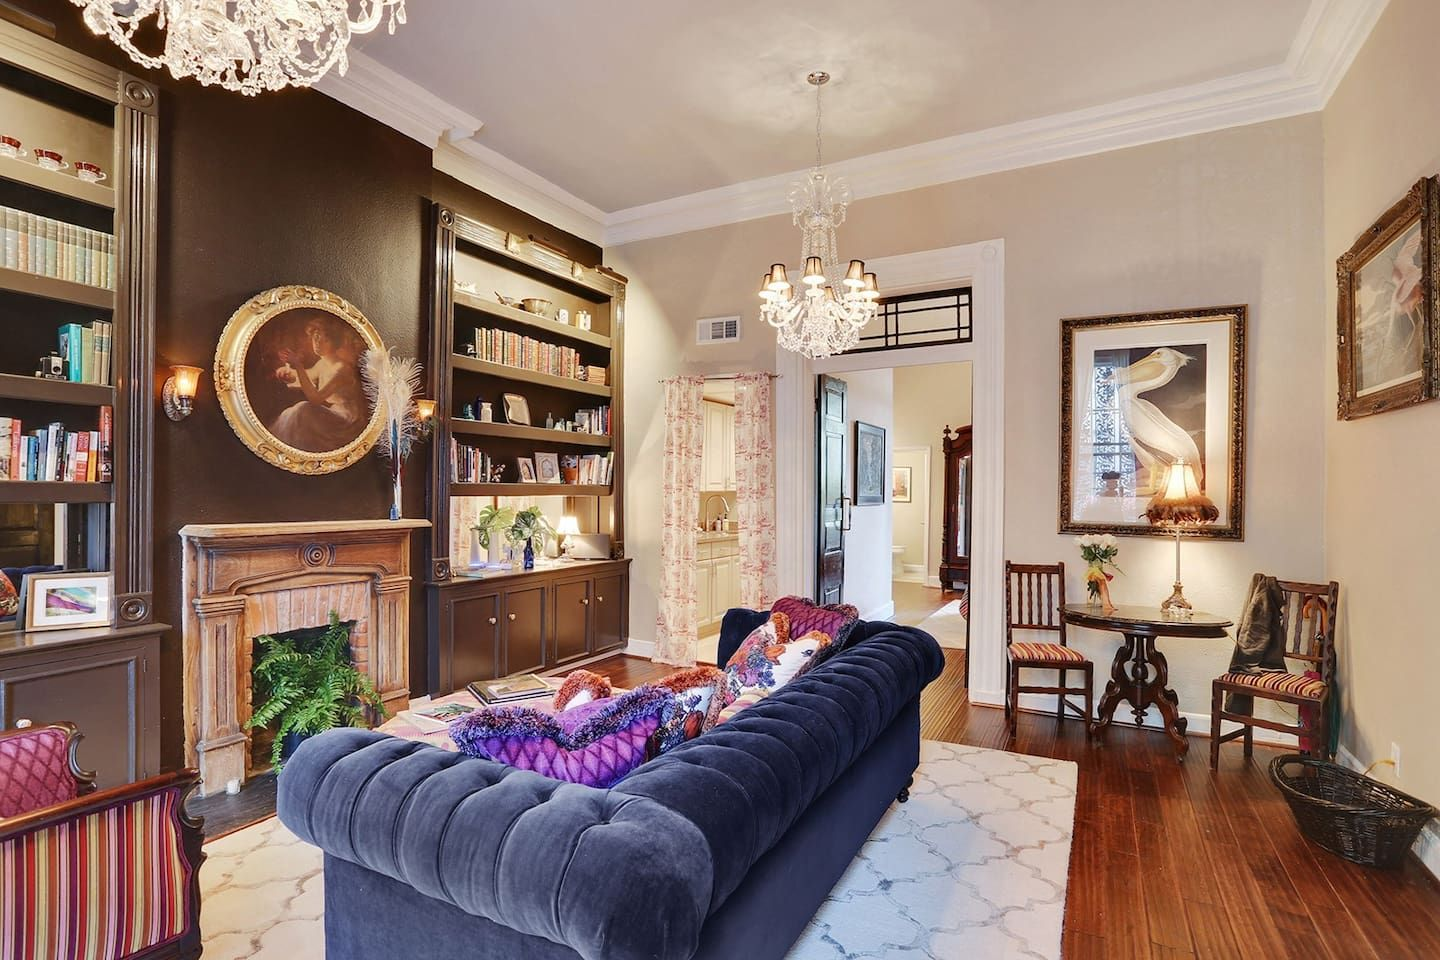 NEW RATES! FRENCH QUARTER! CLOSE to EVERYTHING! - Apartments for Rent in New Orleans